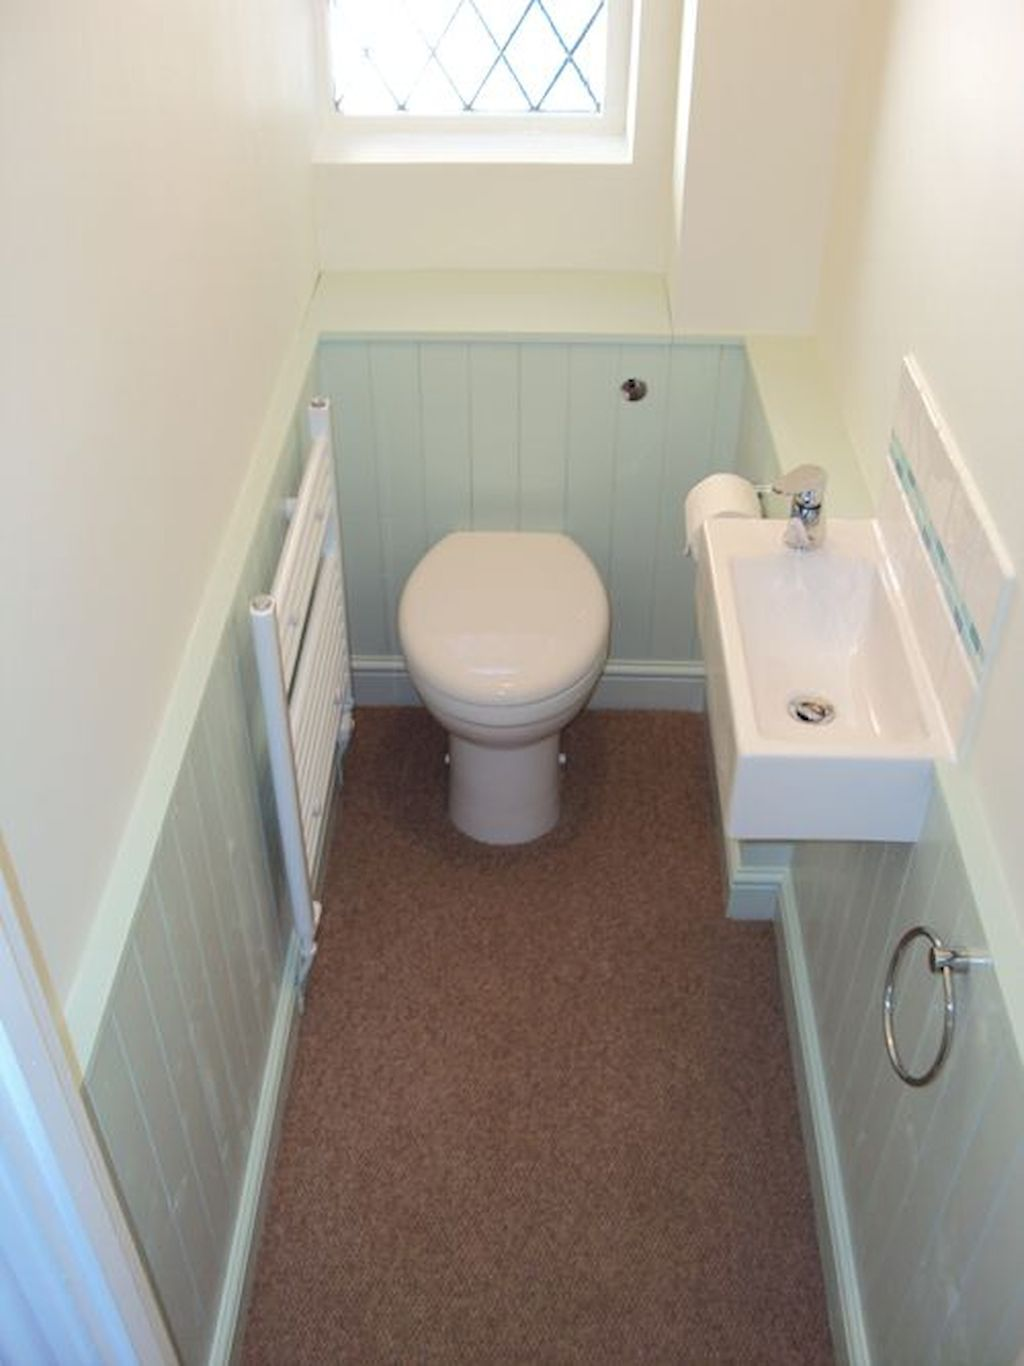 Space Saving Toilet Design For Small Bathroom Cloakroom Toilet